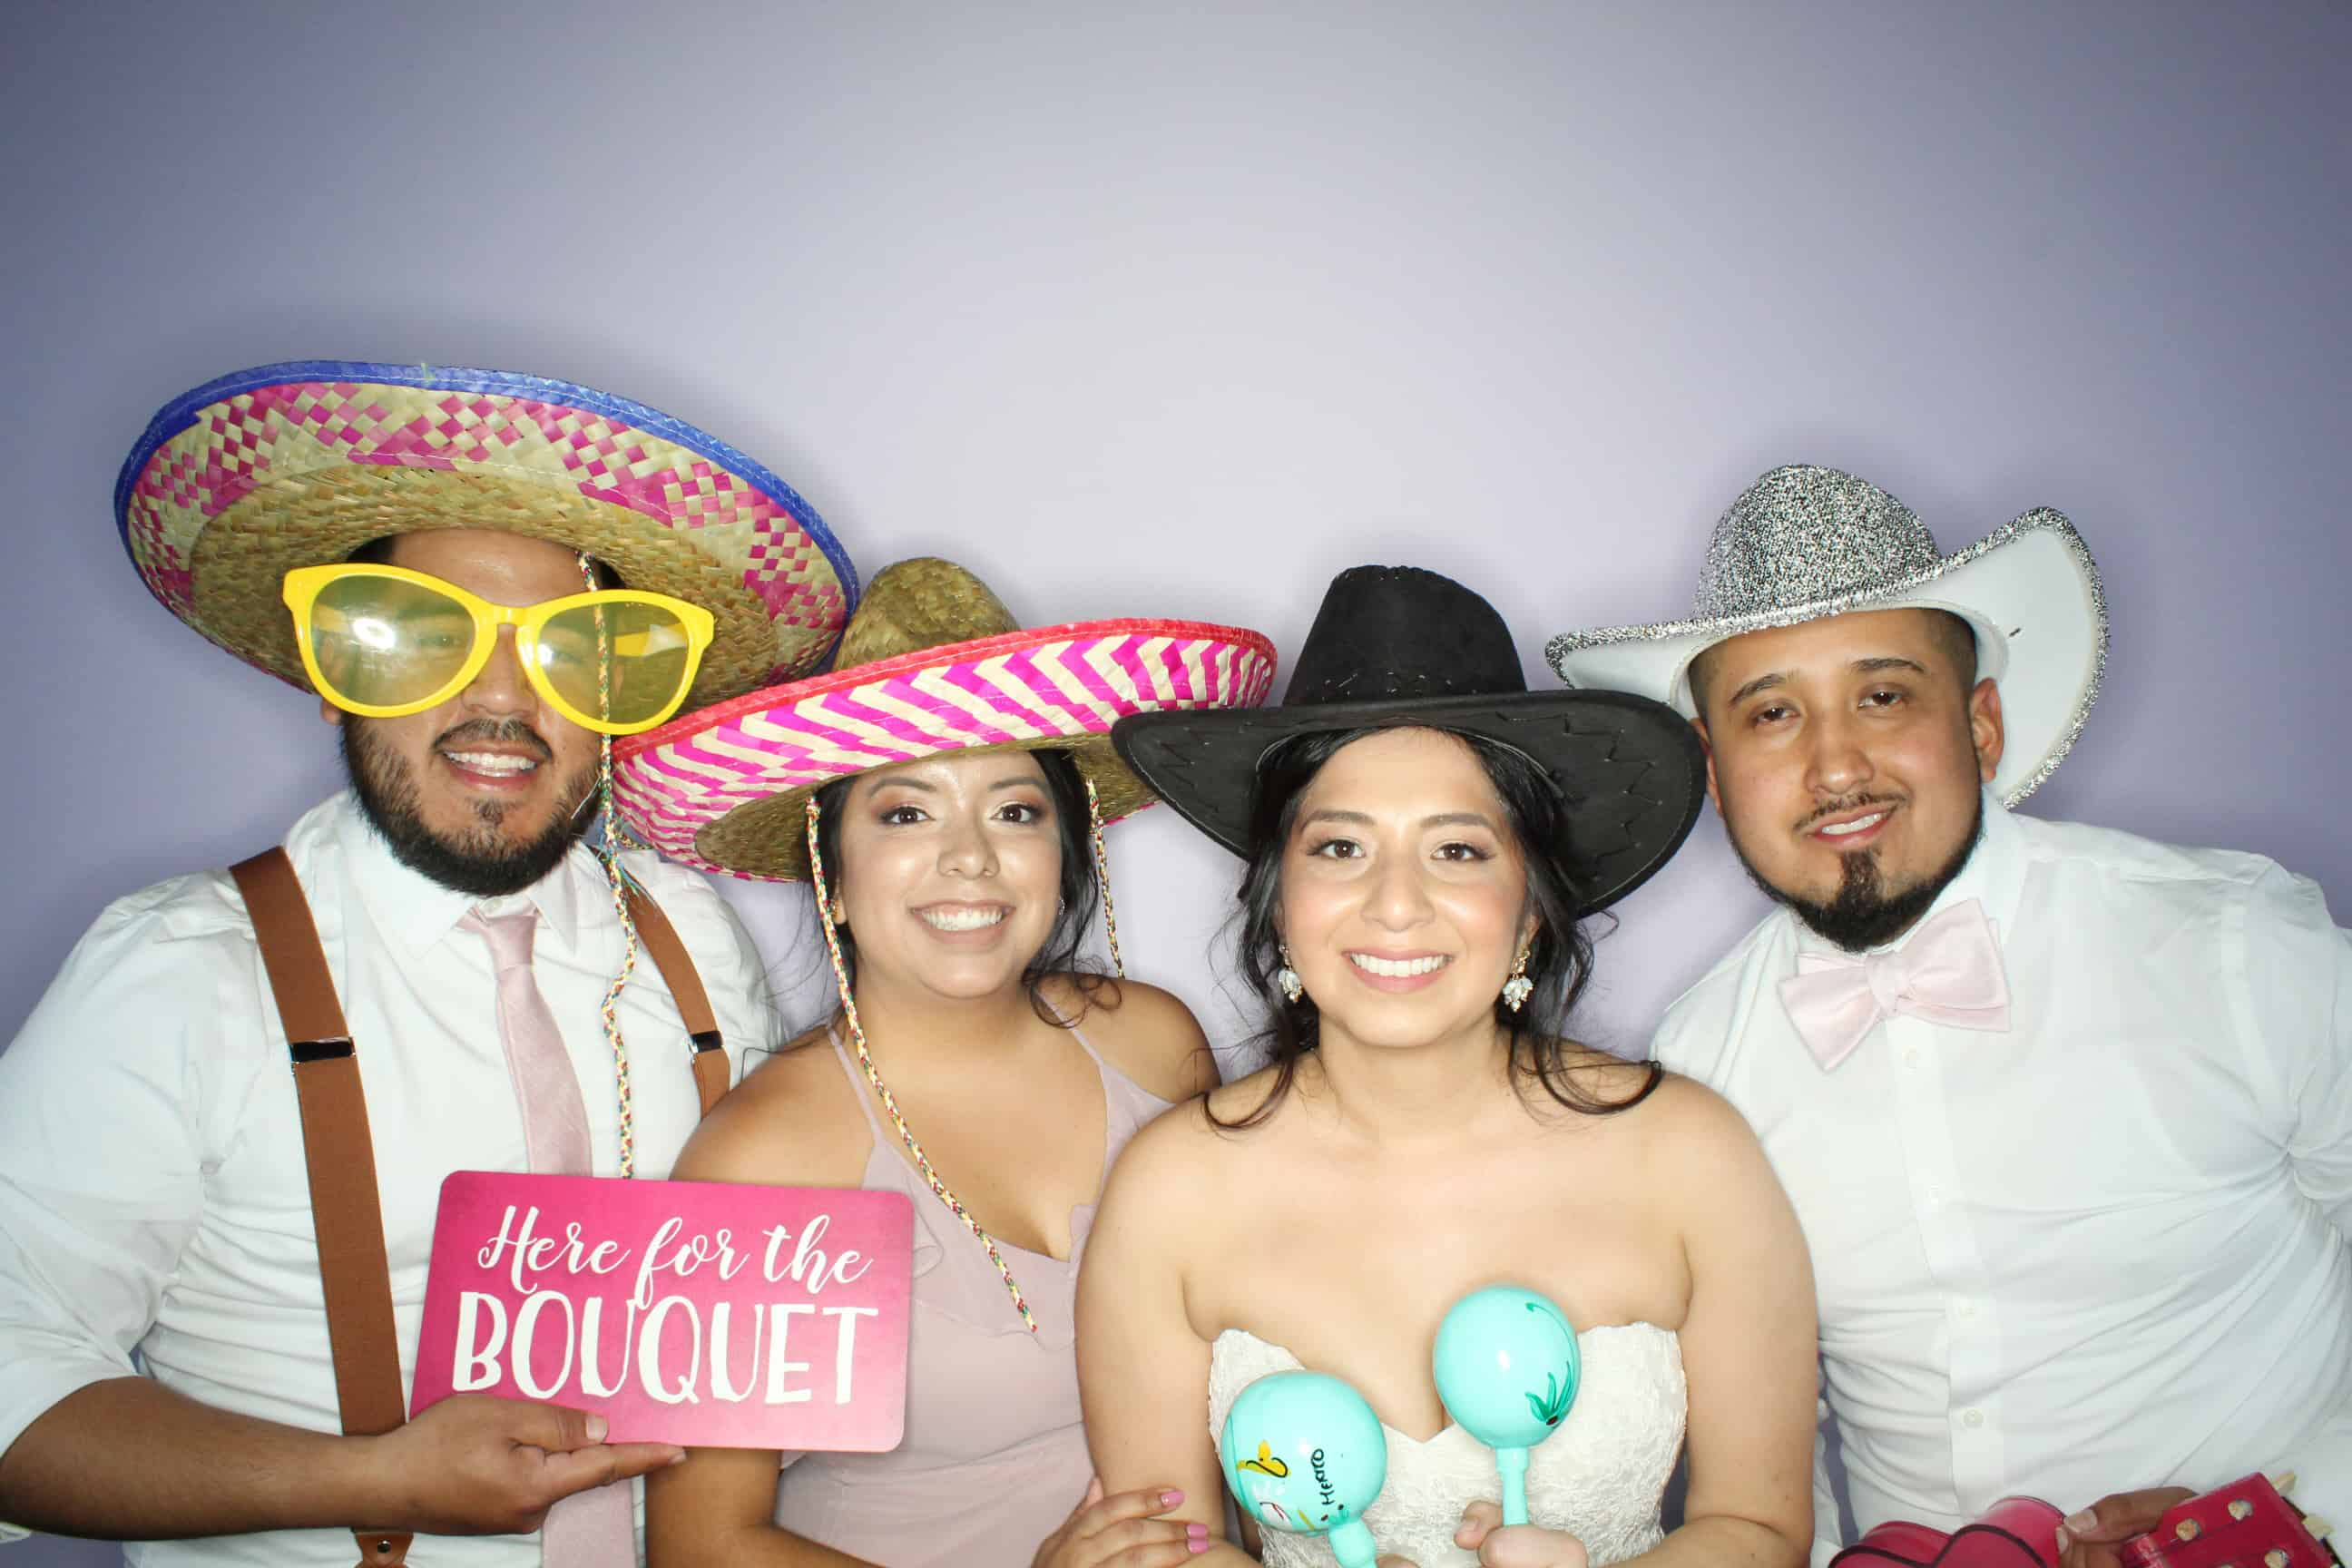 Houston Wedding at The Carriage House Conroe. Photo Booth Rental Houston. HTX Photo Booth. Photo Booth. Open Concept Photo Booth.